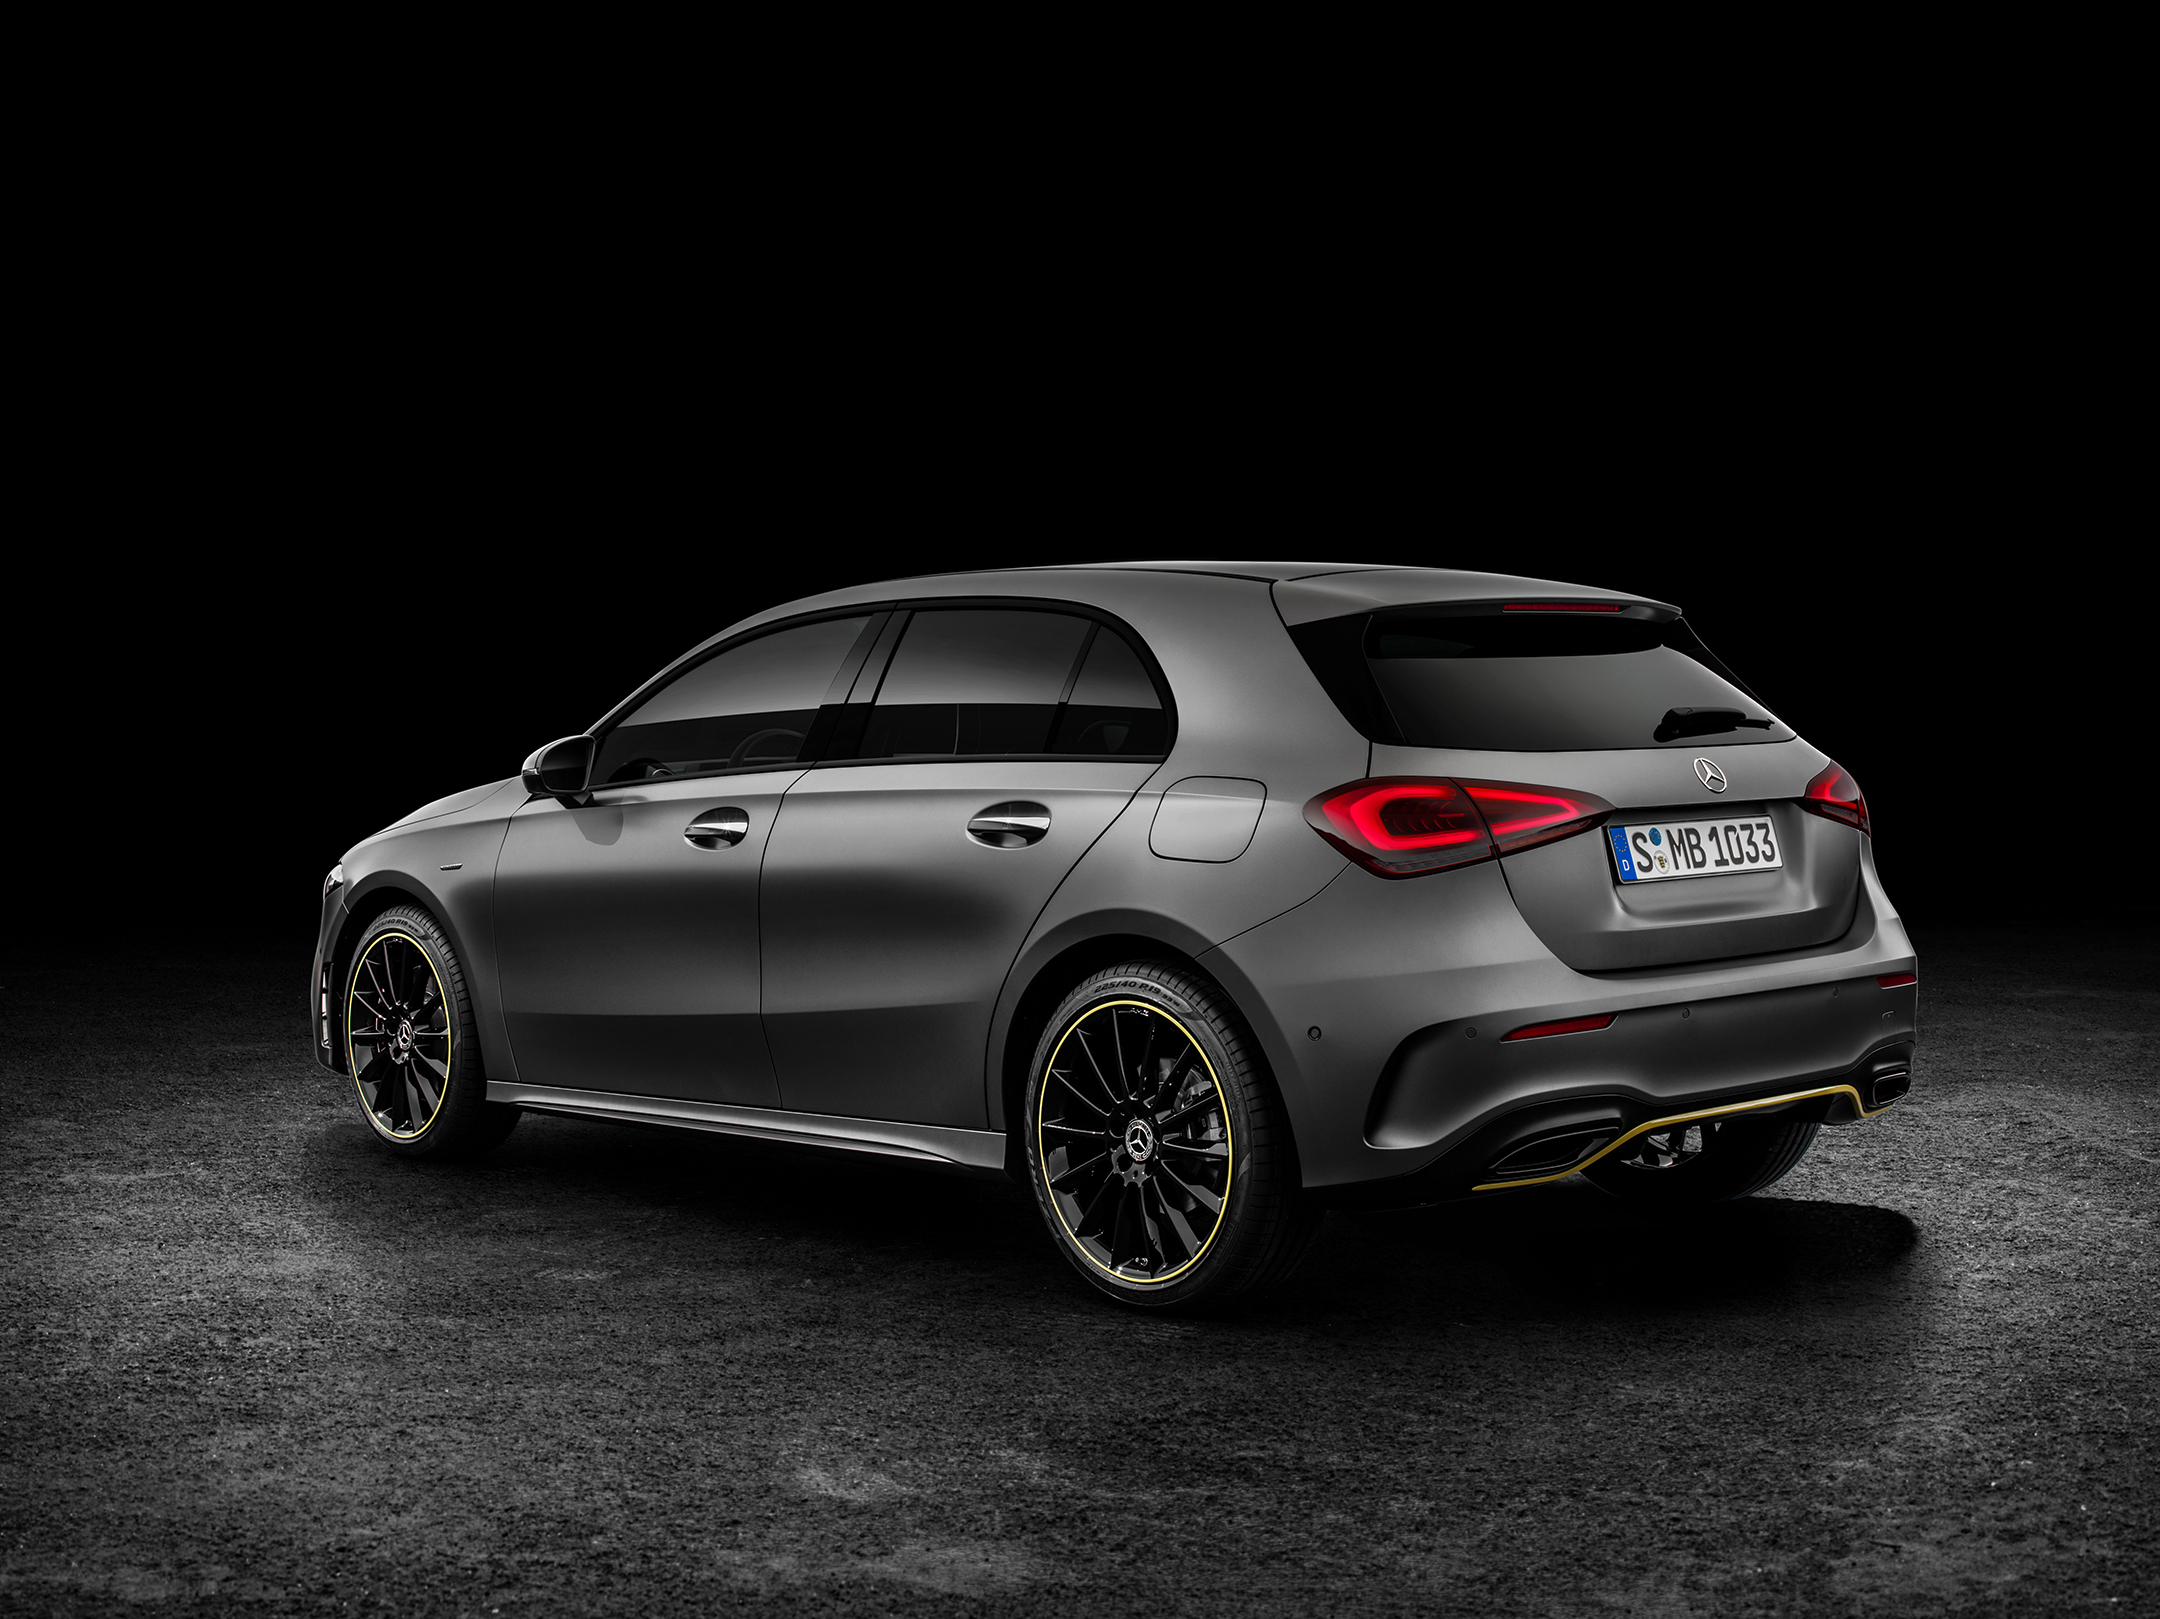 Mercedes-Benz A-Class - 2018 - rear side-face / profil arrière